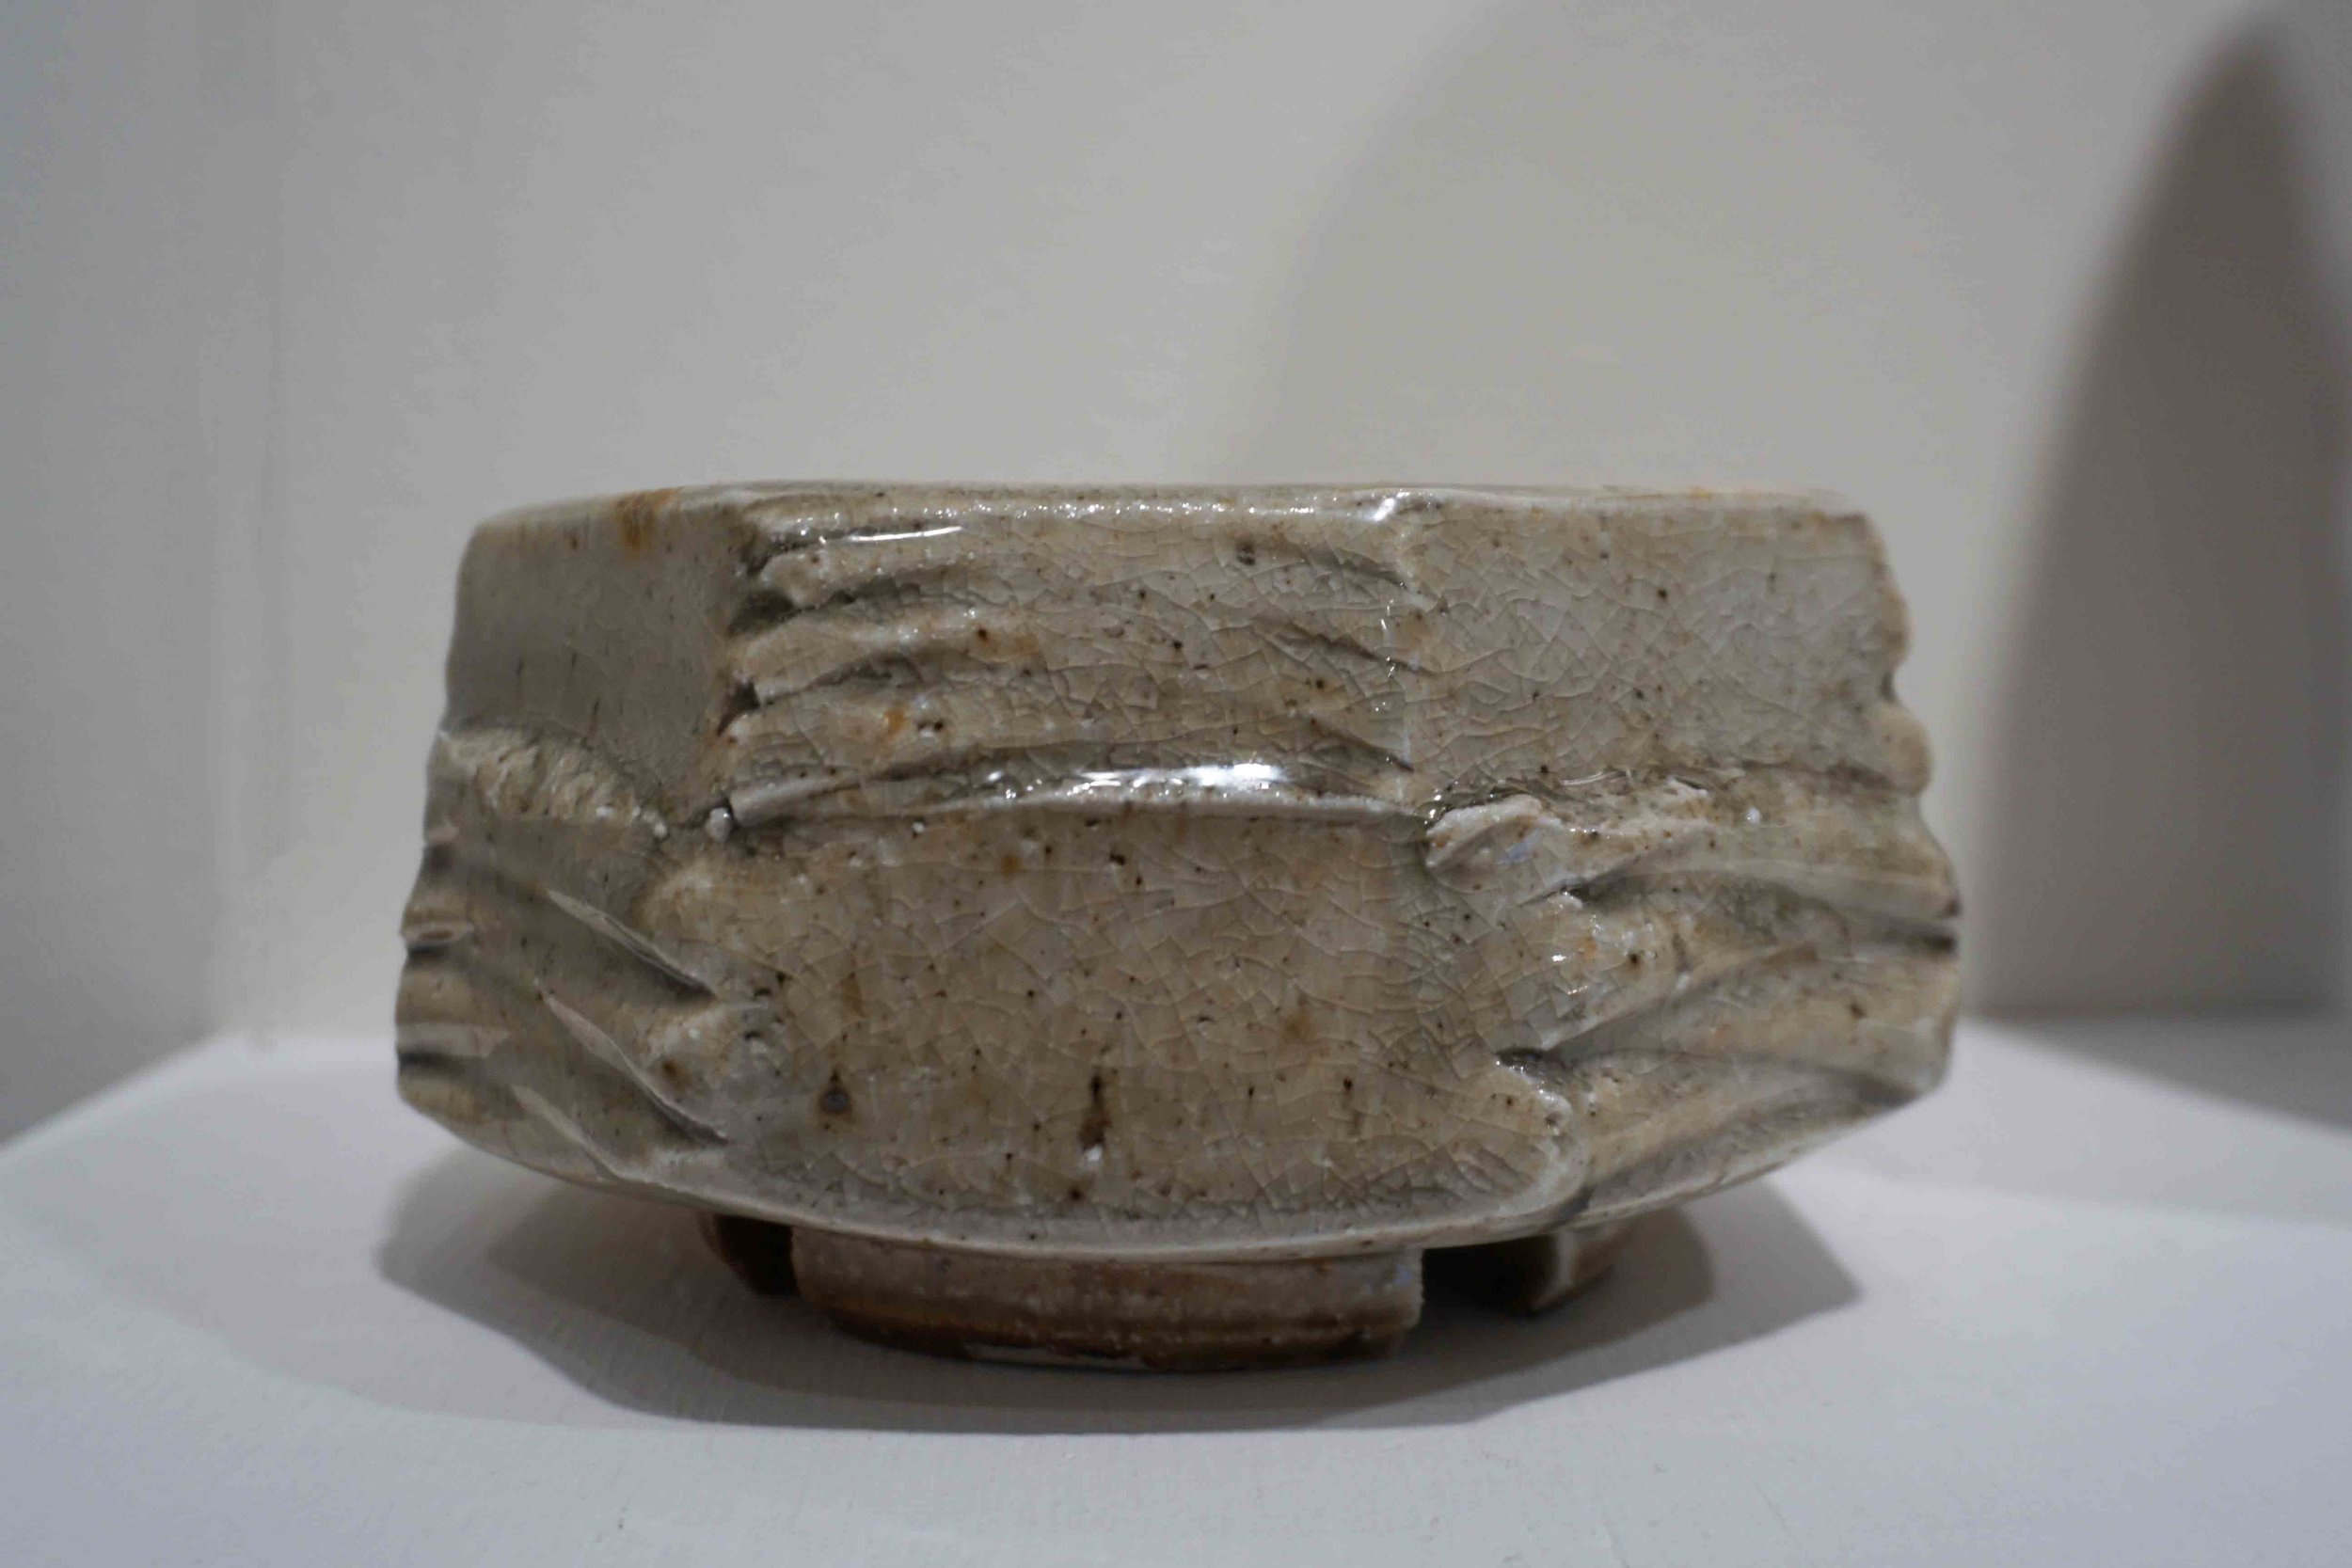 8. Greg Crowe,  Square Bowl,  2015, woodfired stoneware, 9 x 18 x 18 cm $500